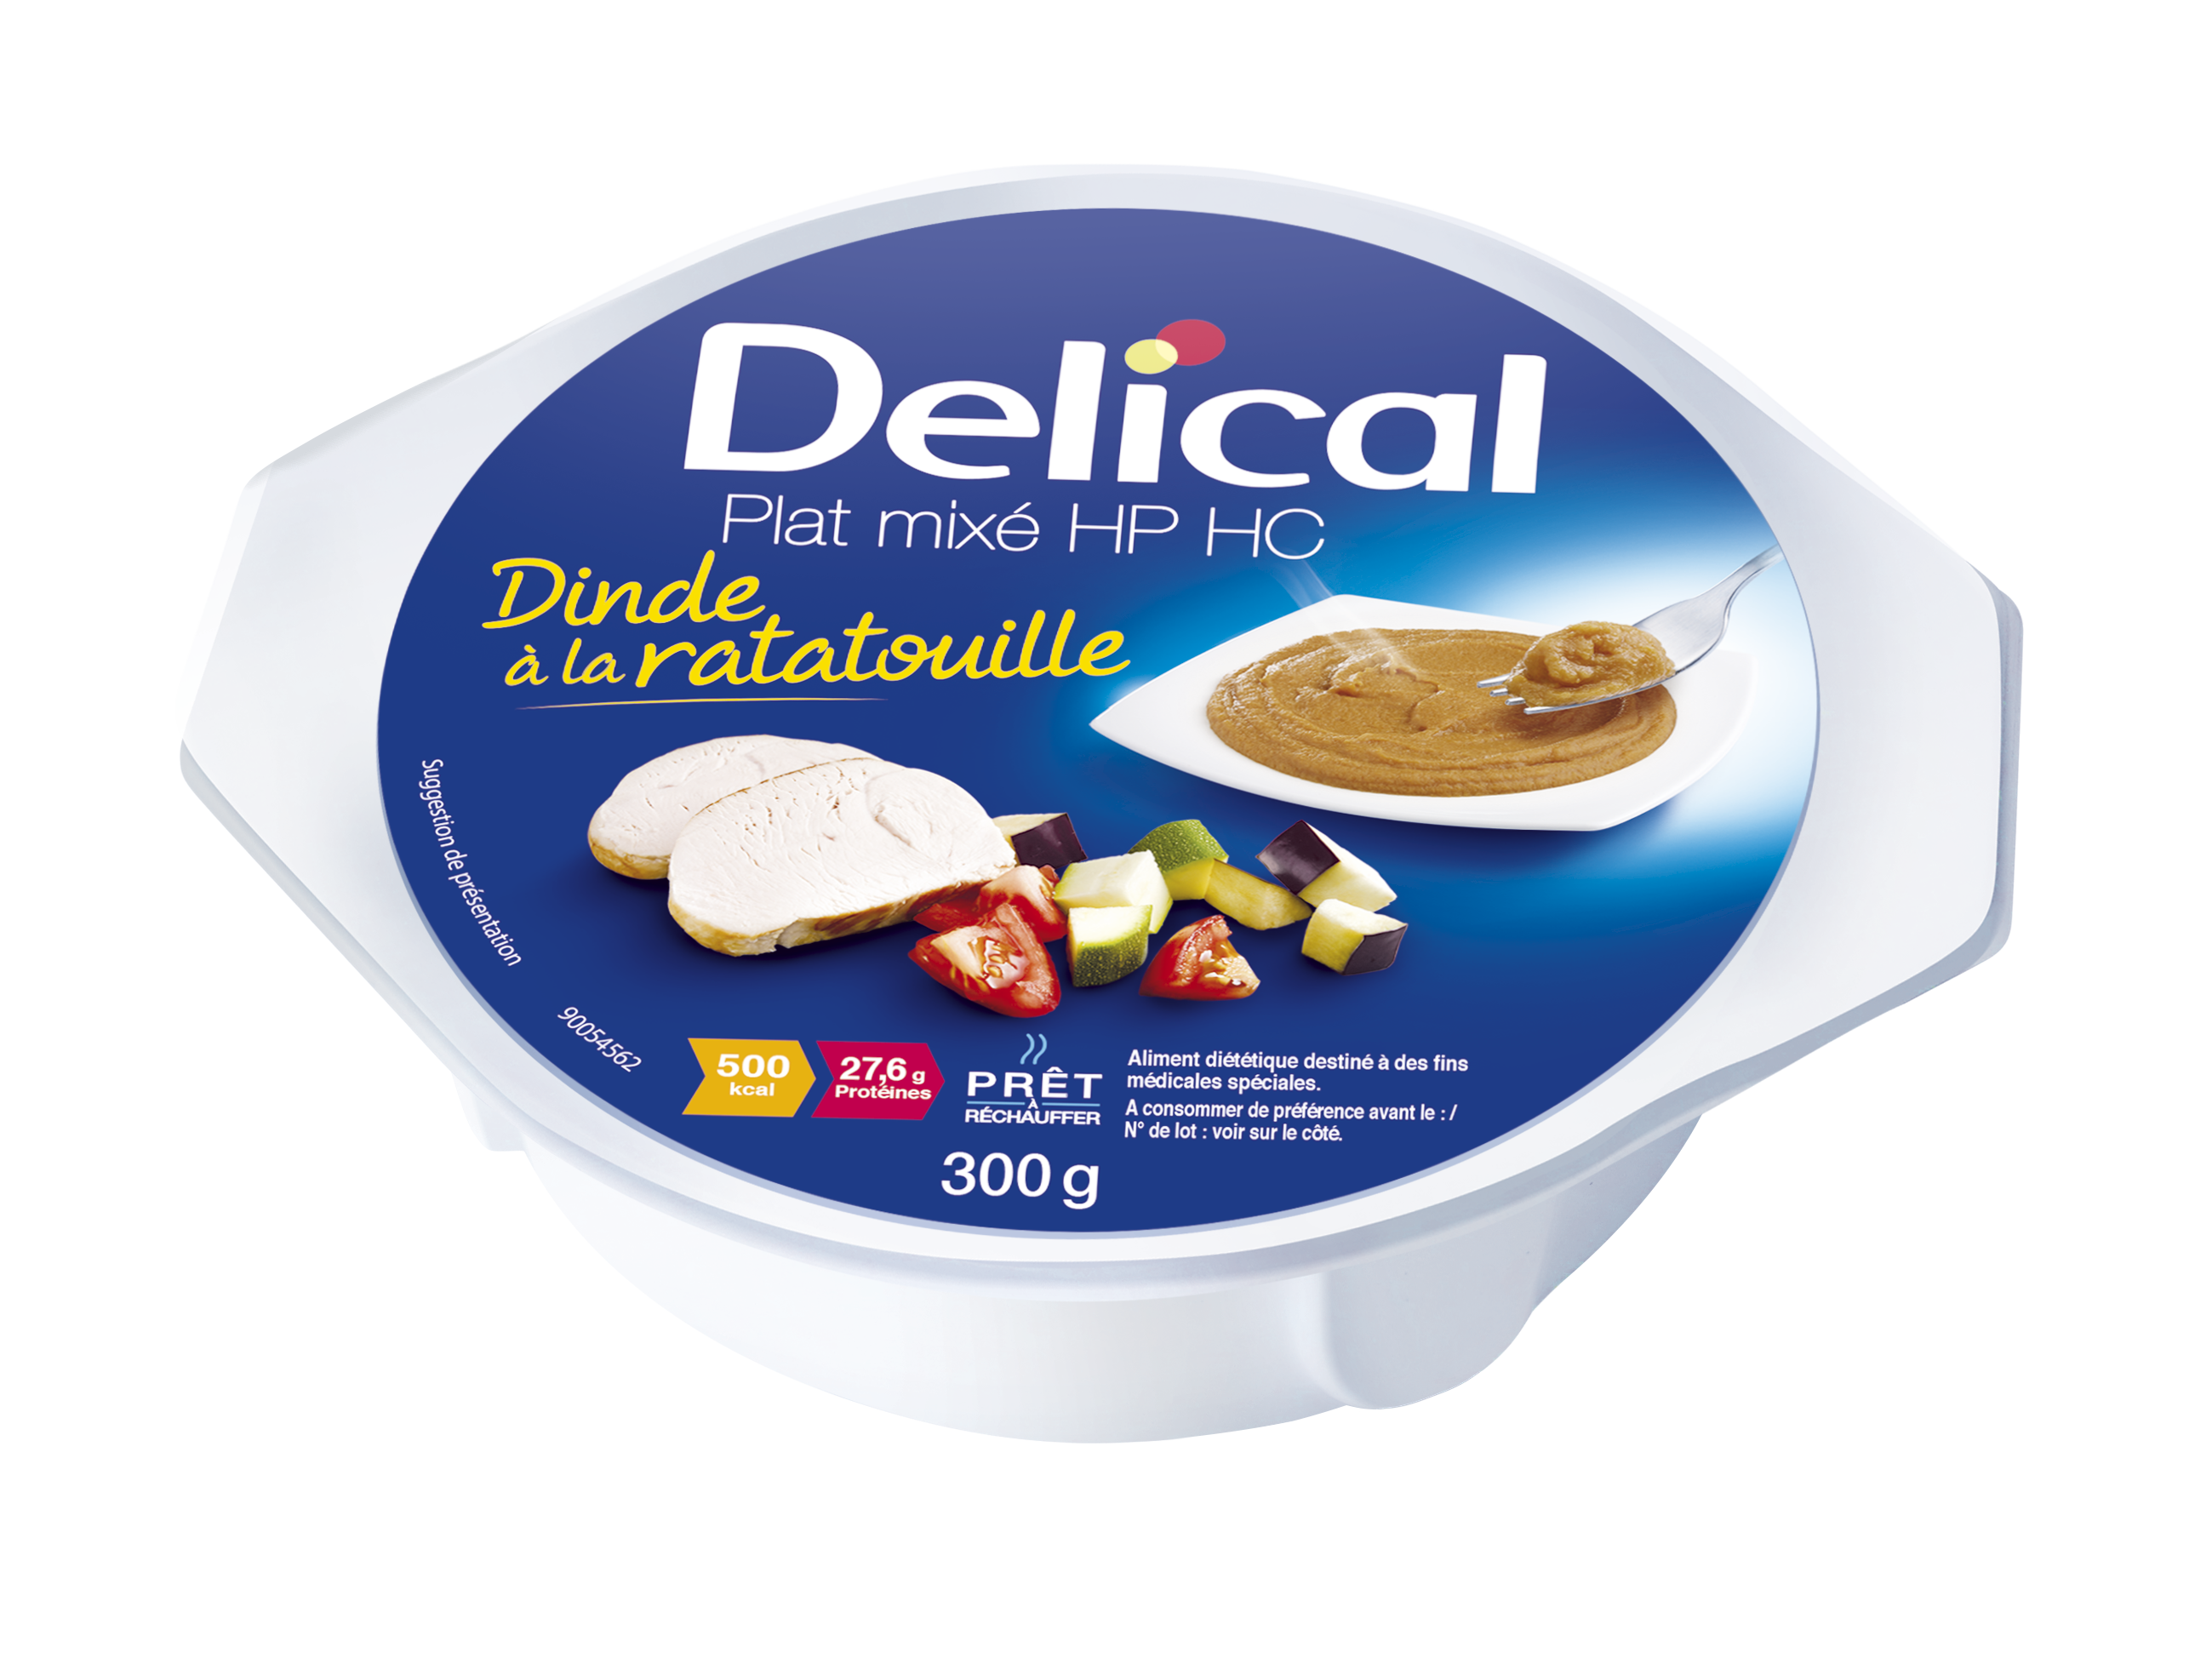 Delical Nutra Mix Hp Hc Dinde Ratatouille